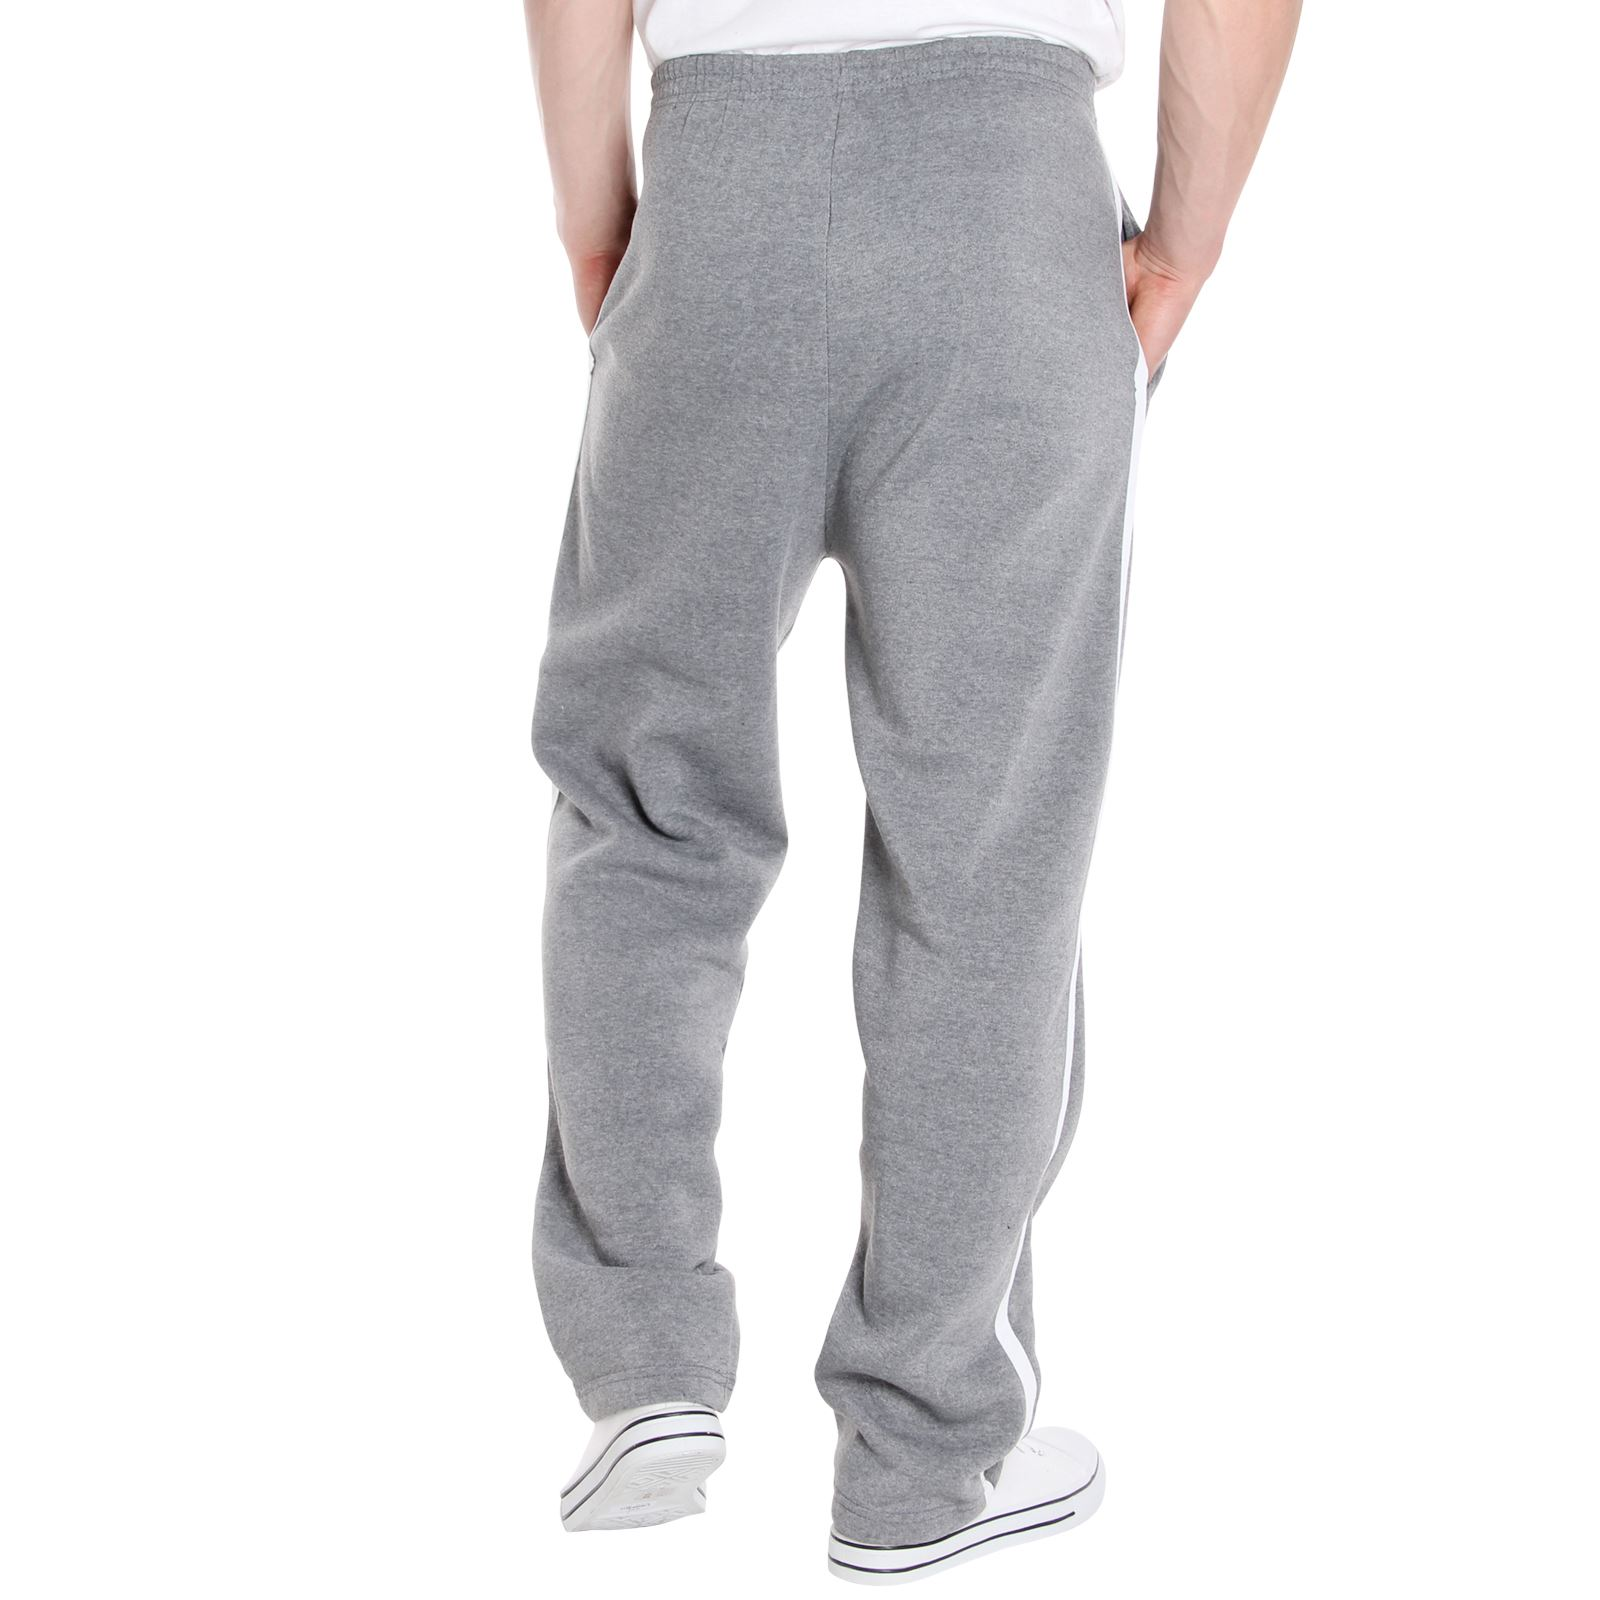 Mens-Tracksuit-Bottoms-Striped-Joggers-Jogging-Trousers-Fleece-Pants-Casual-Work thumbnail 19